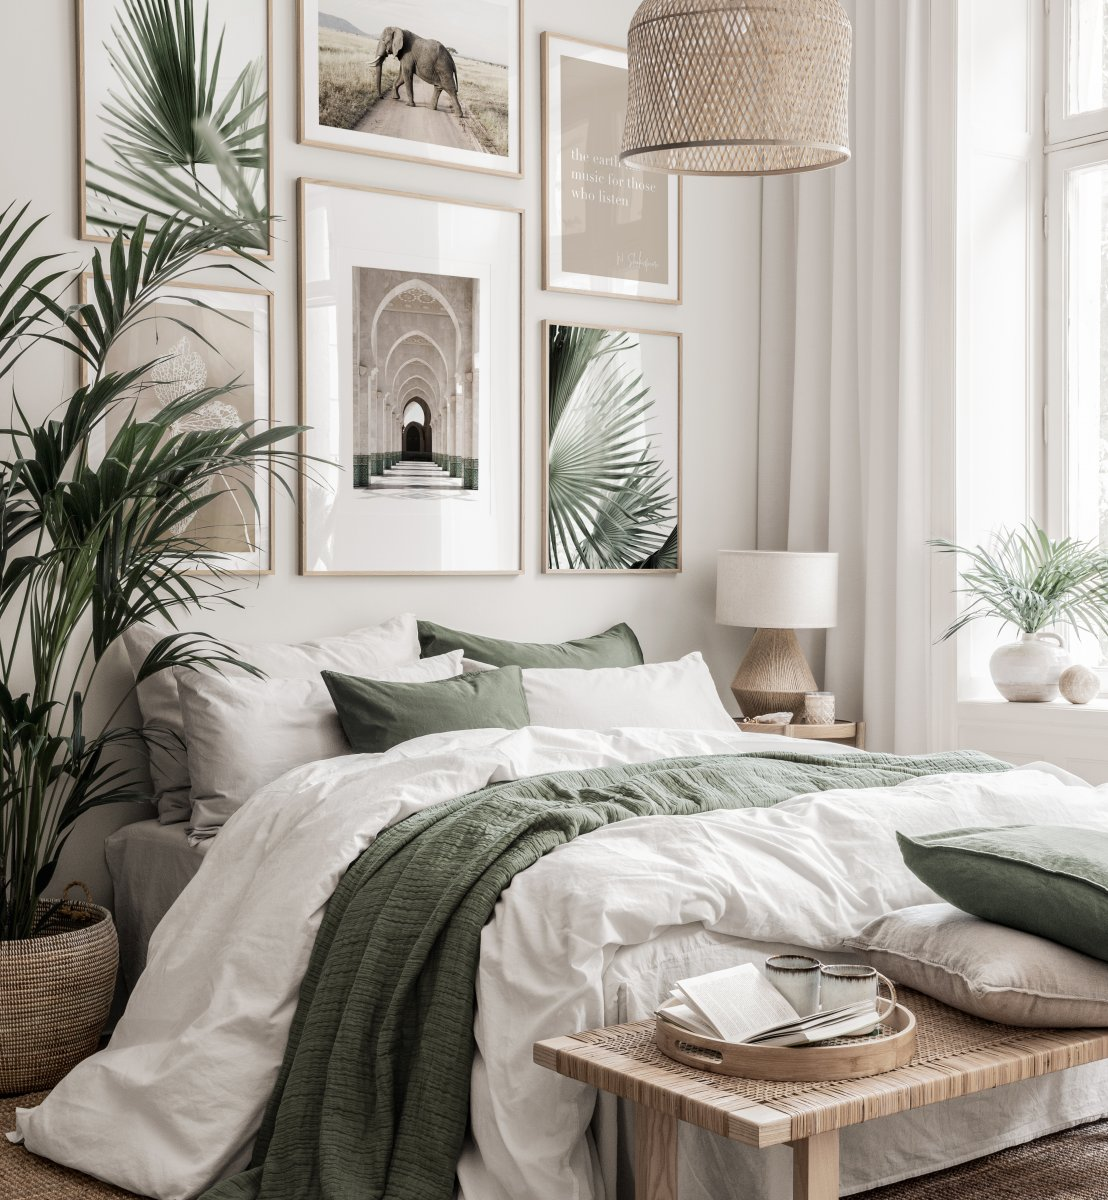 Combine Green and Beige Color